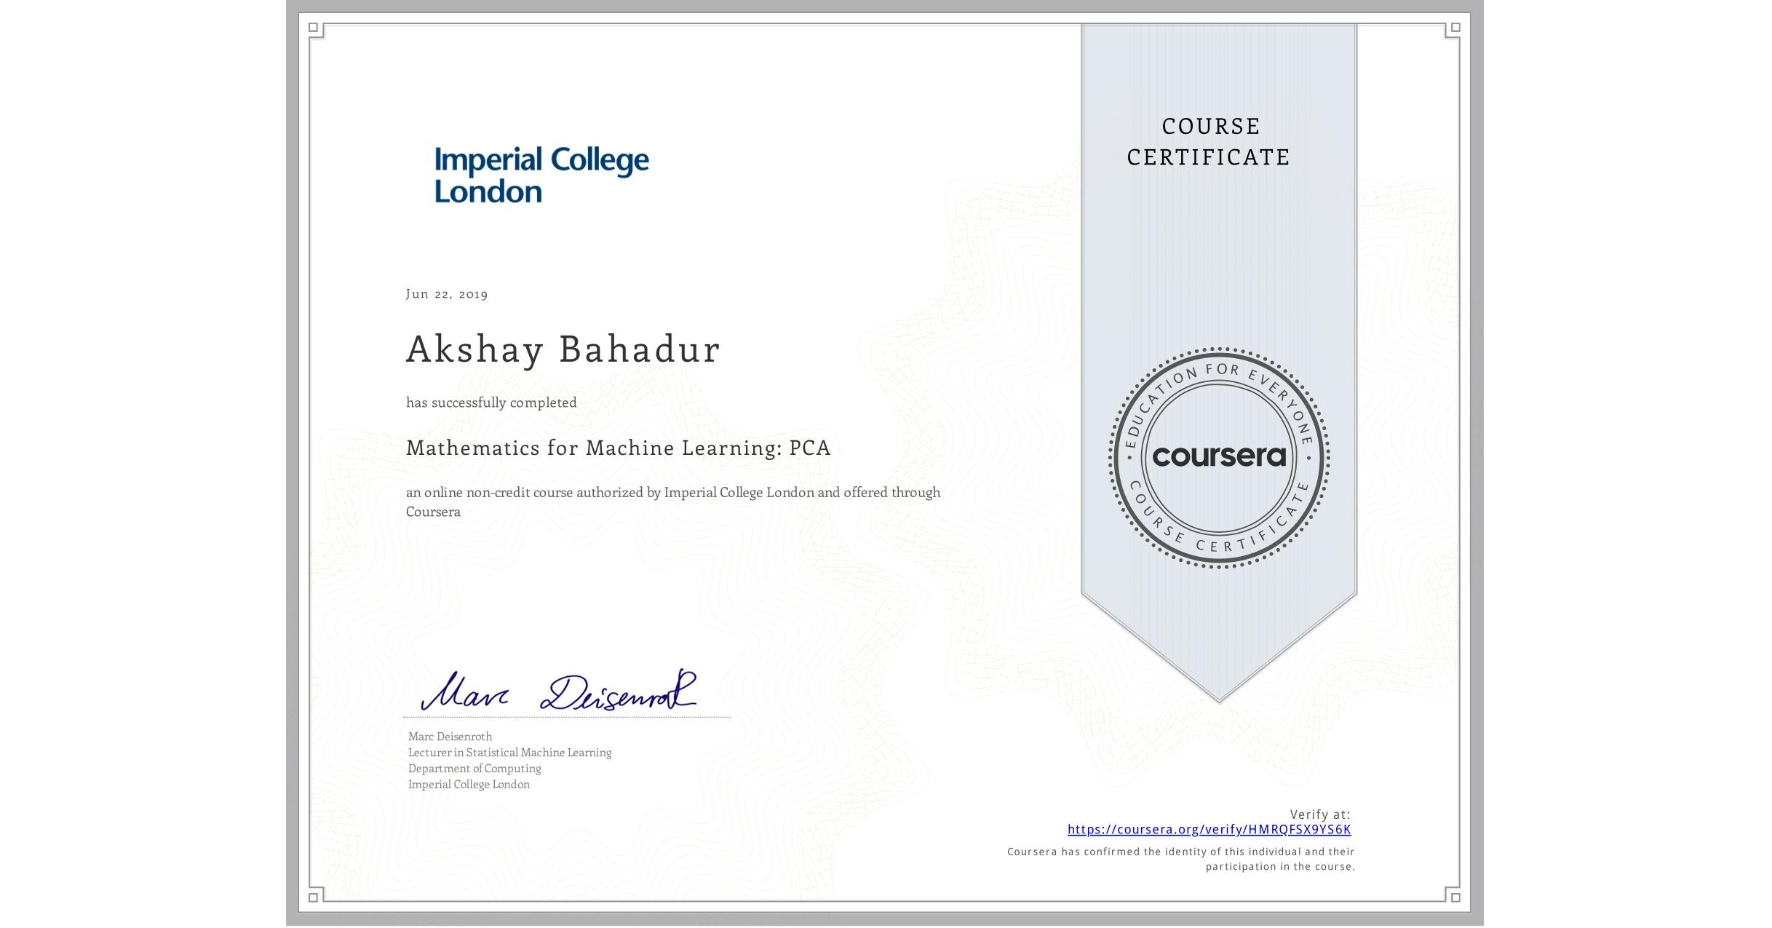 View certificate for Akshay Bahadur, Mathematics for Machine Learning: PCA, an online non-credit course authorized by Imperial College London and offered through Coursera